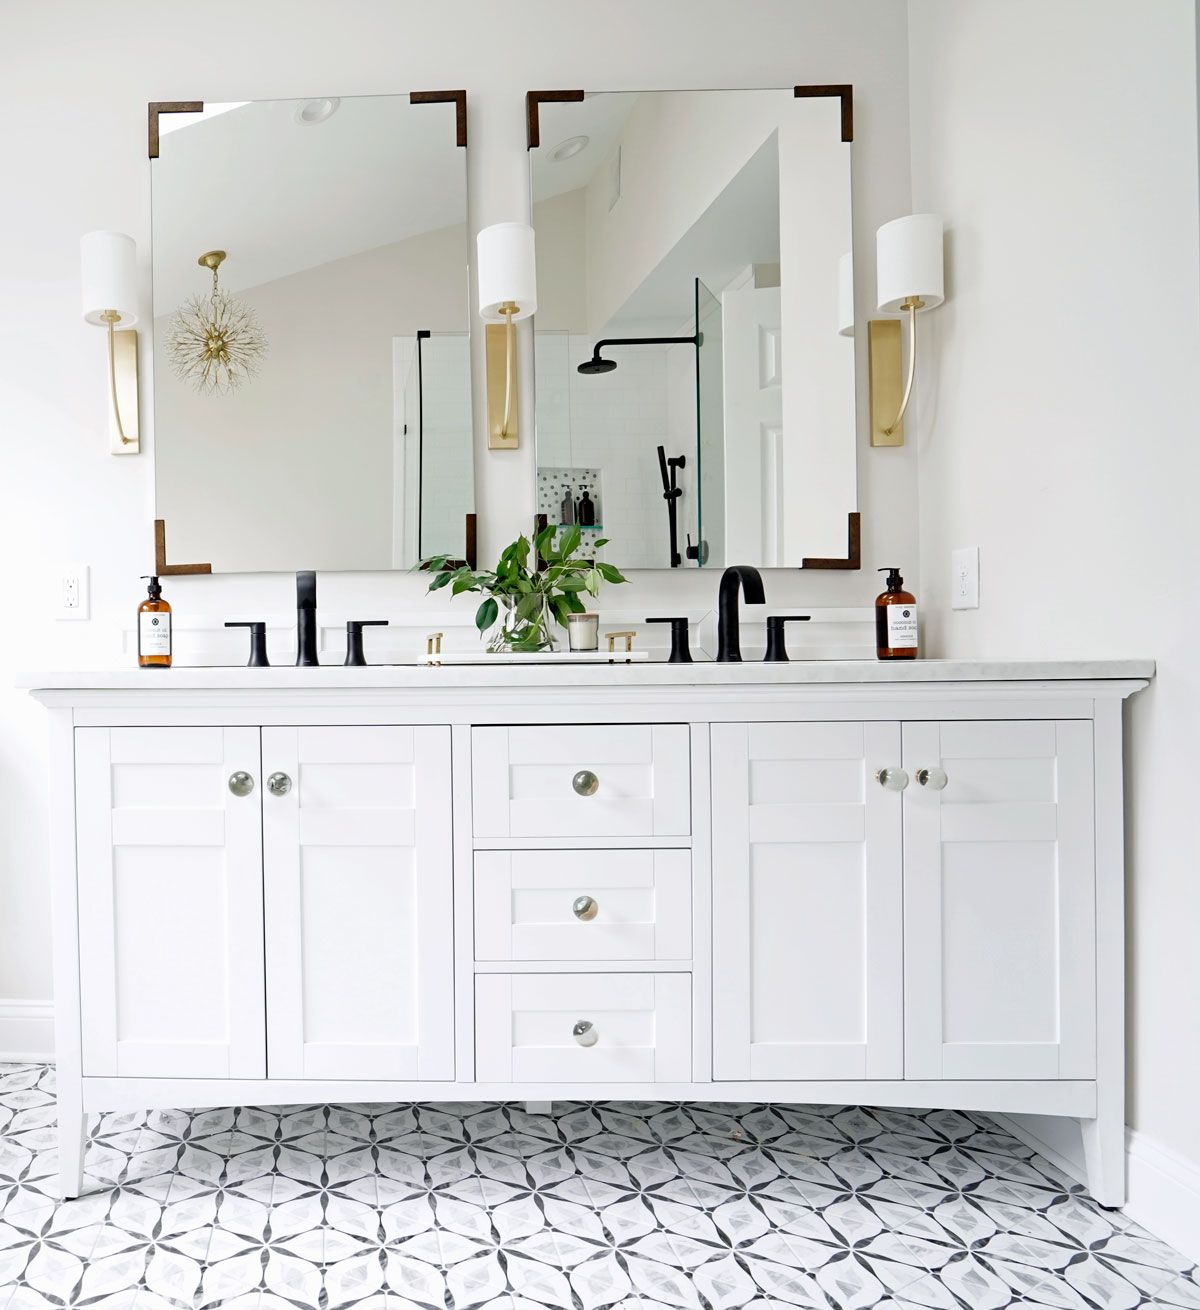 30 Amazing Ideas And Pictures Of Antique Bathroom Tiles Small Bathroom Renovations White Bathroom Tiles Vintage Bathroom Tile